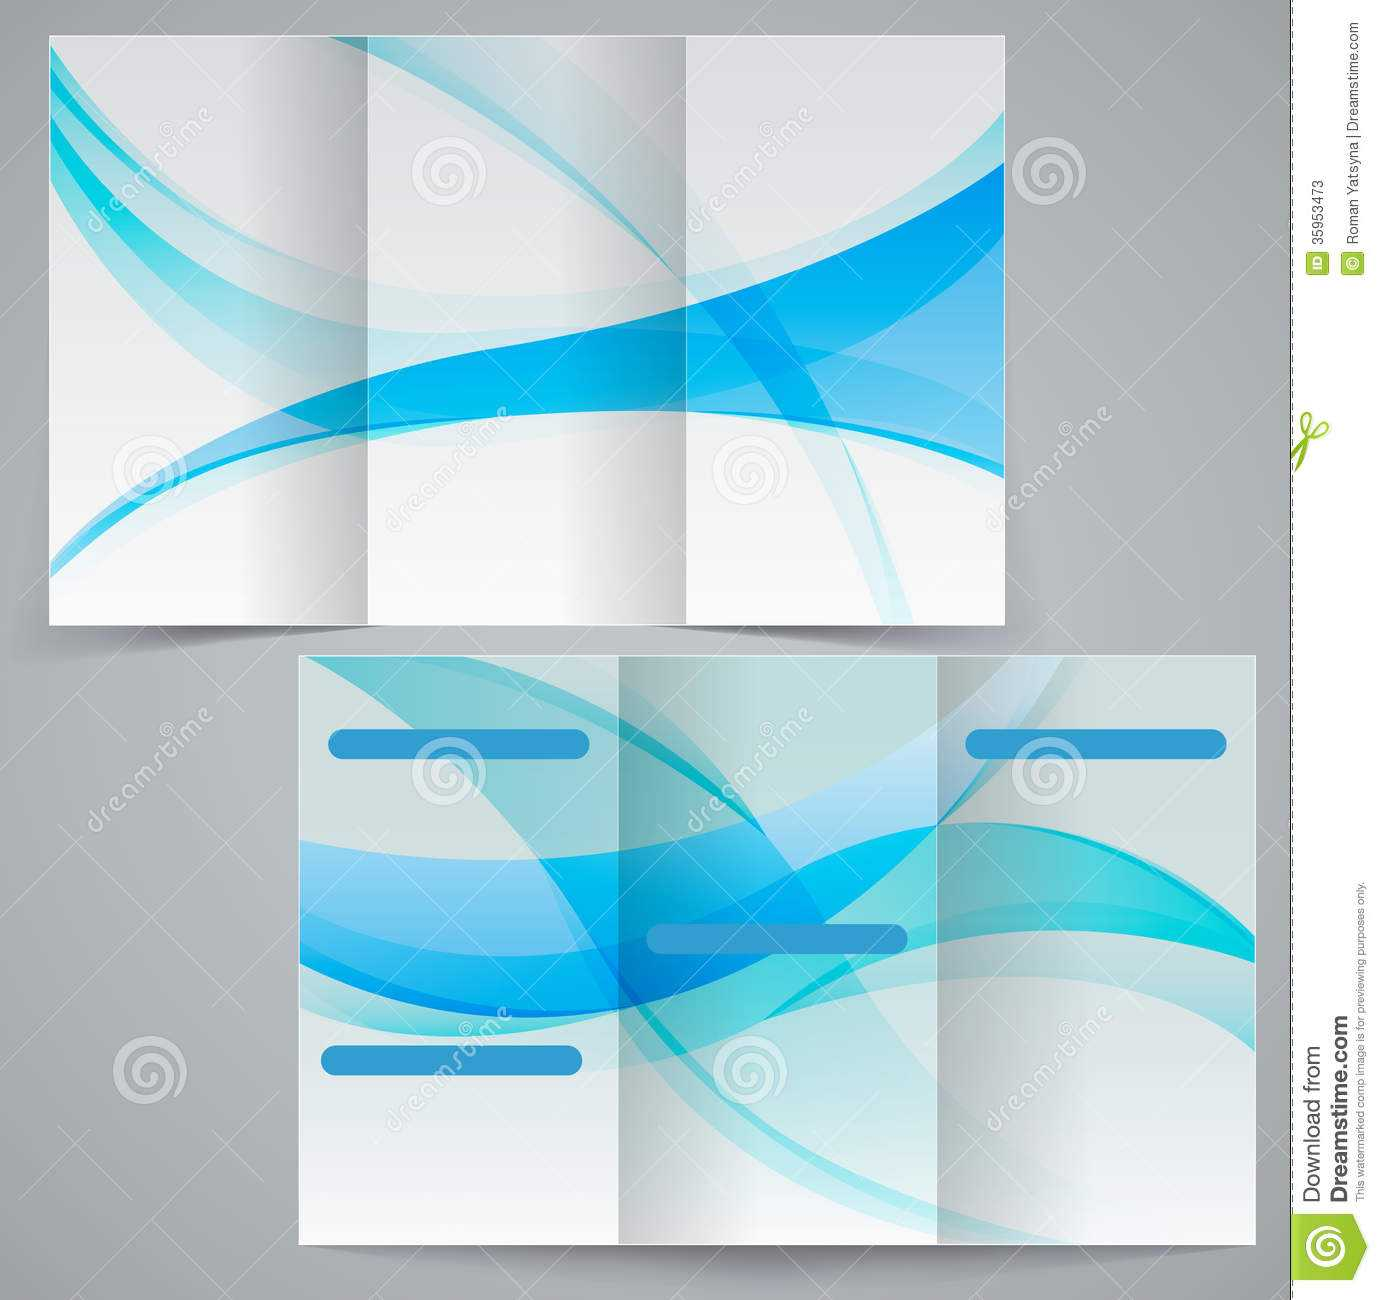 Tri Fold Business Brochure Template, Vector Blue D Stock Pertaining To Free Tri Fold Brochure Templates Microsoft Word